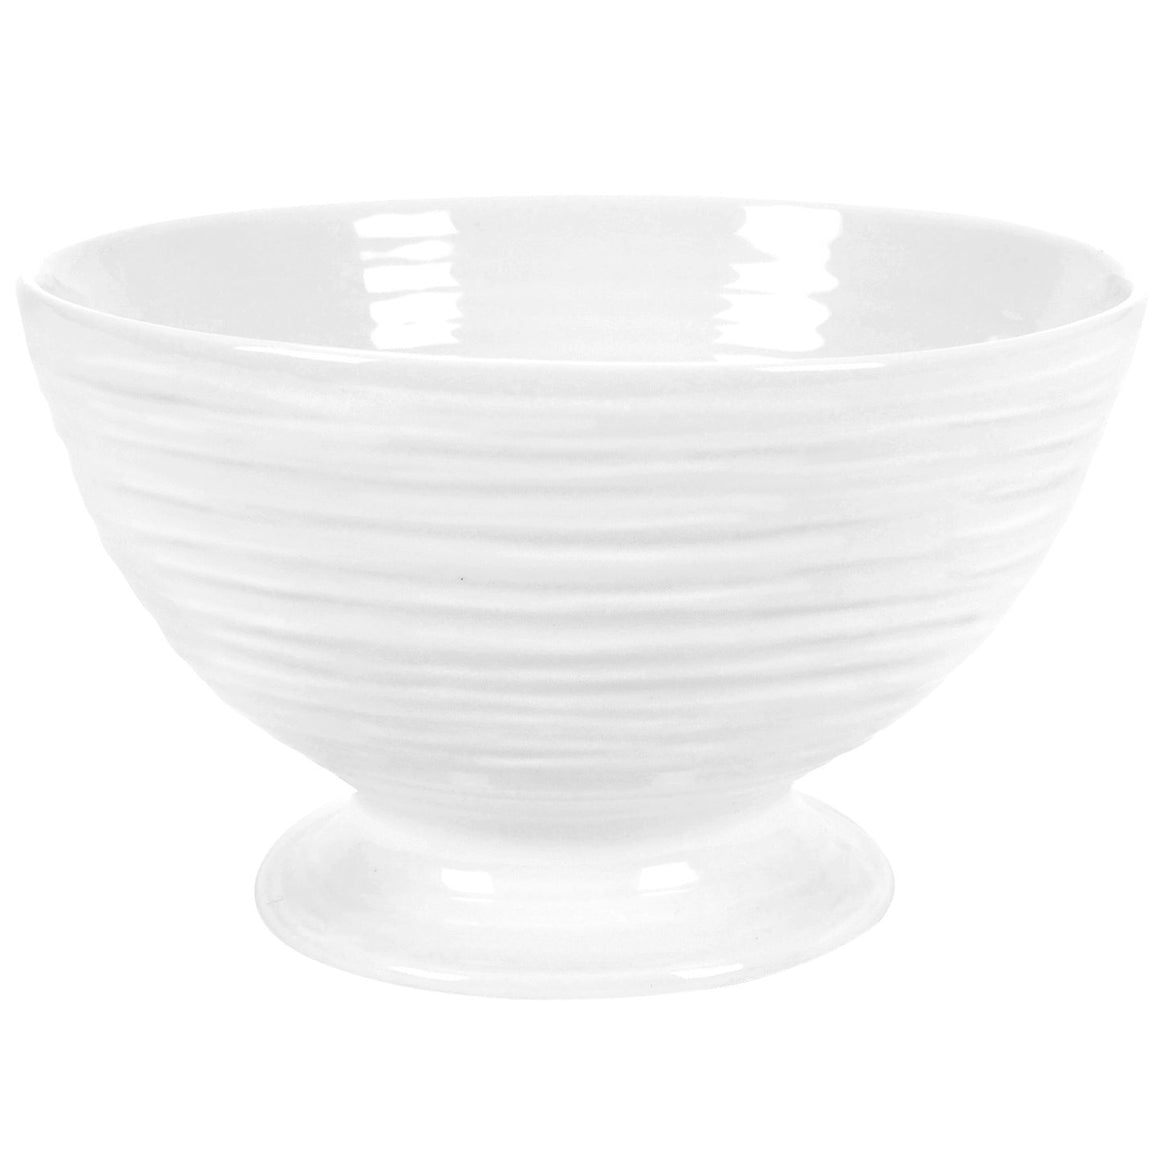 Sophie Conran Small Footed Bowl